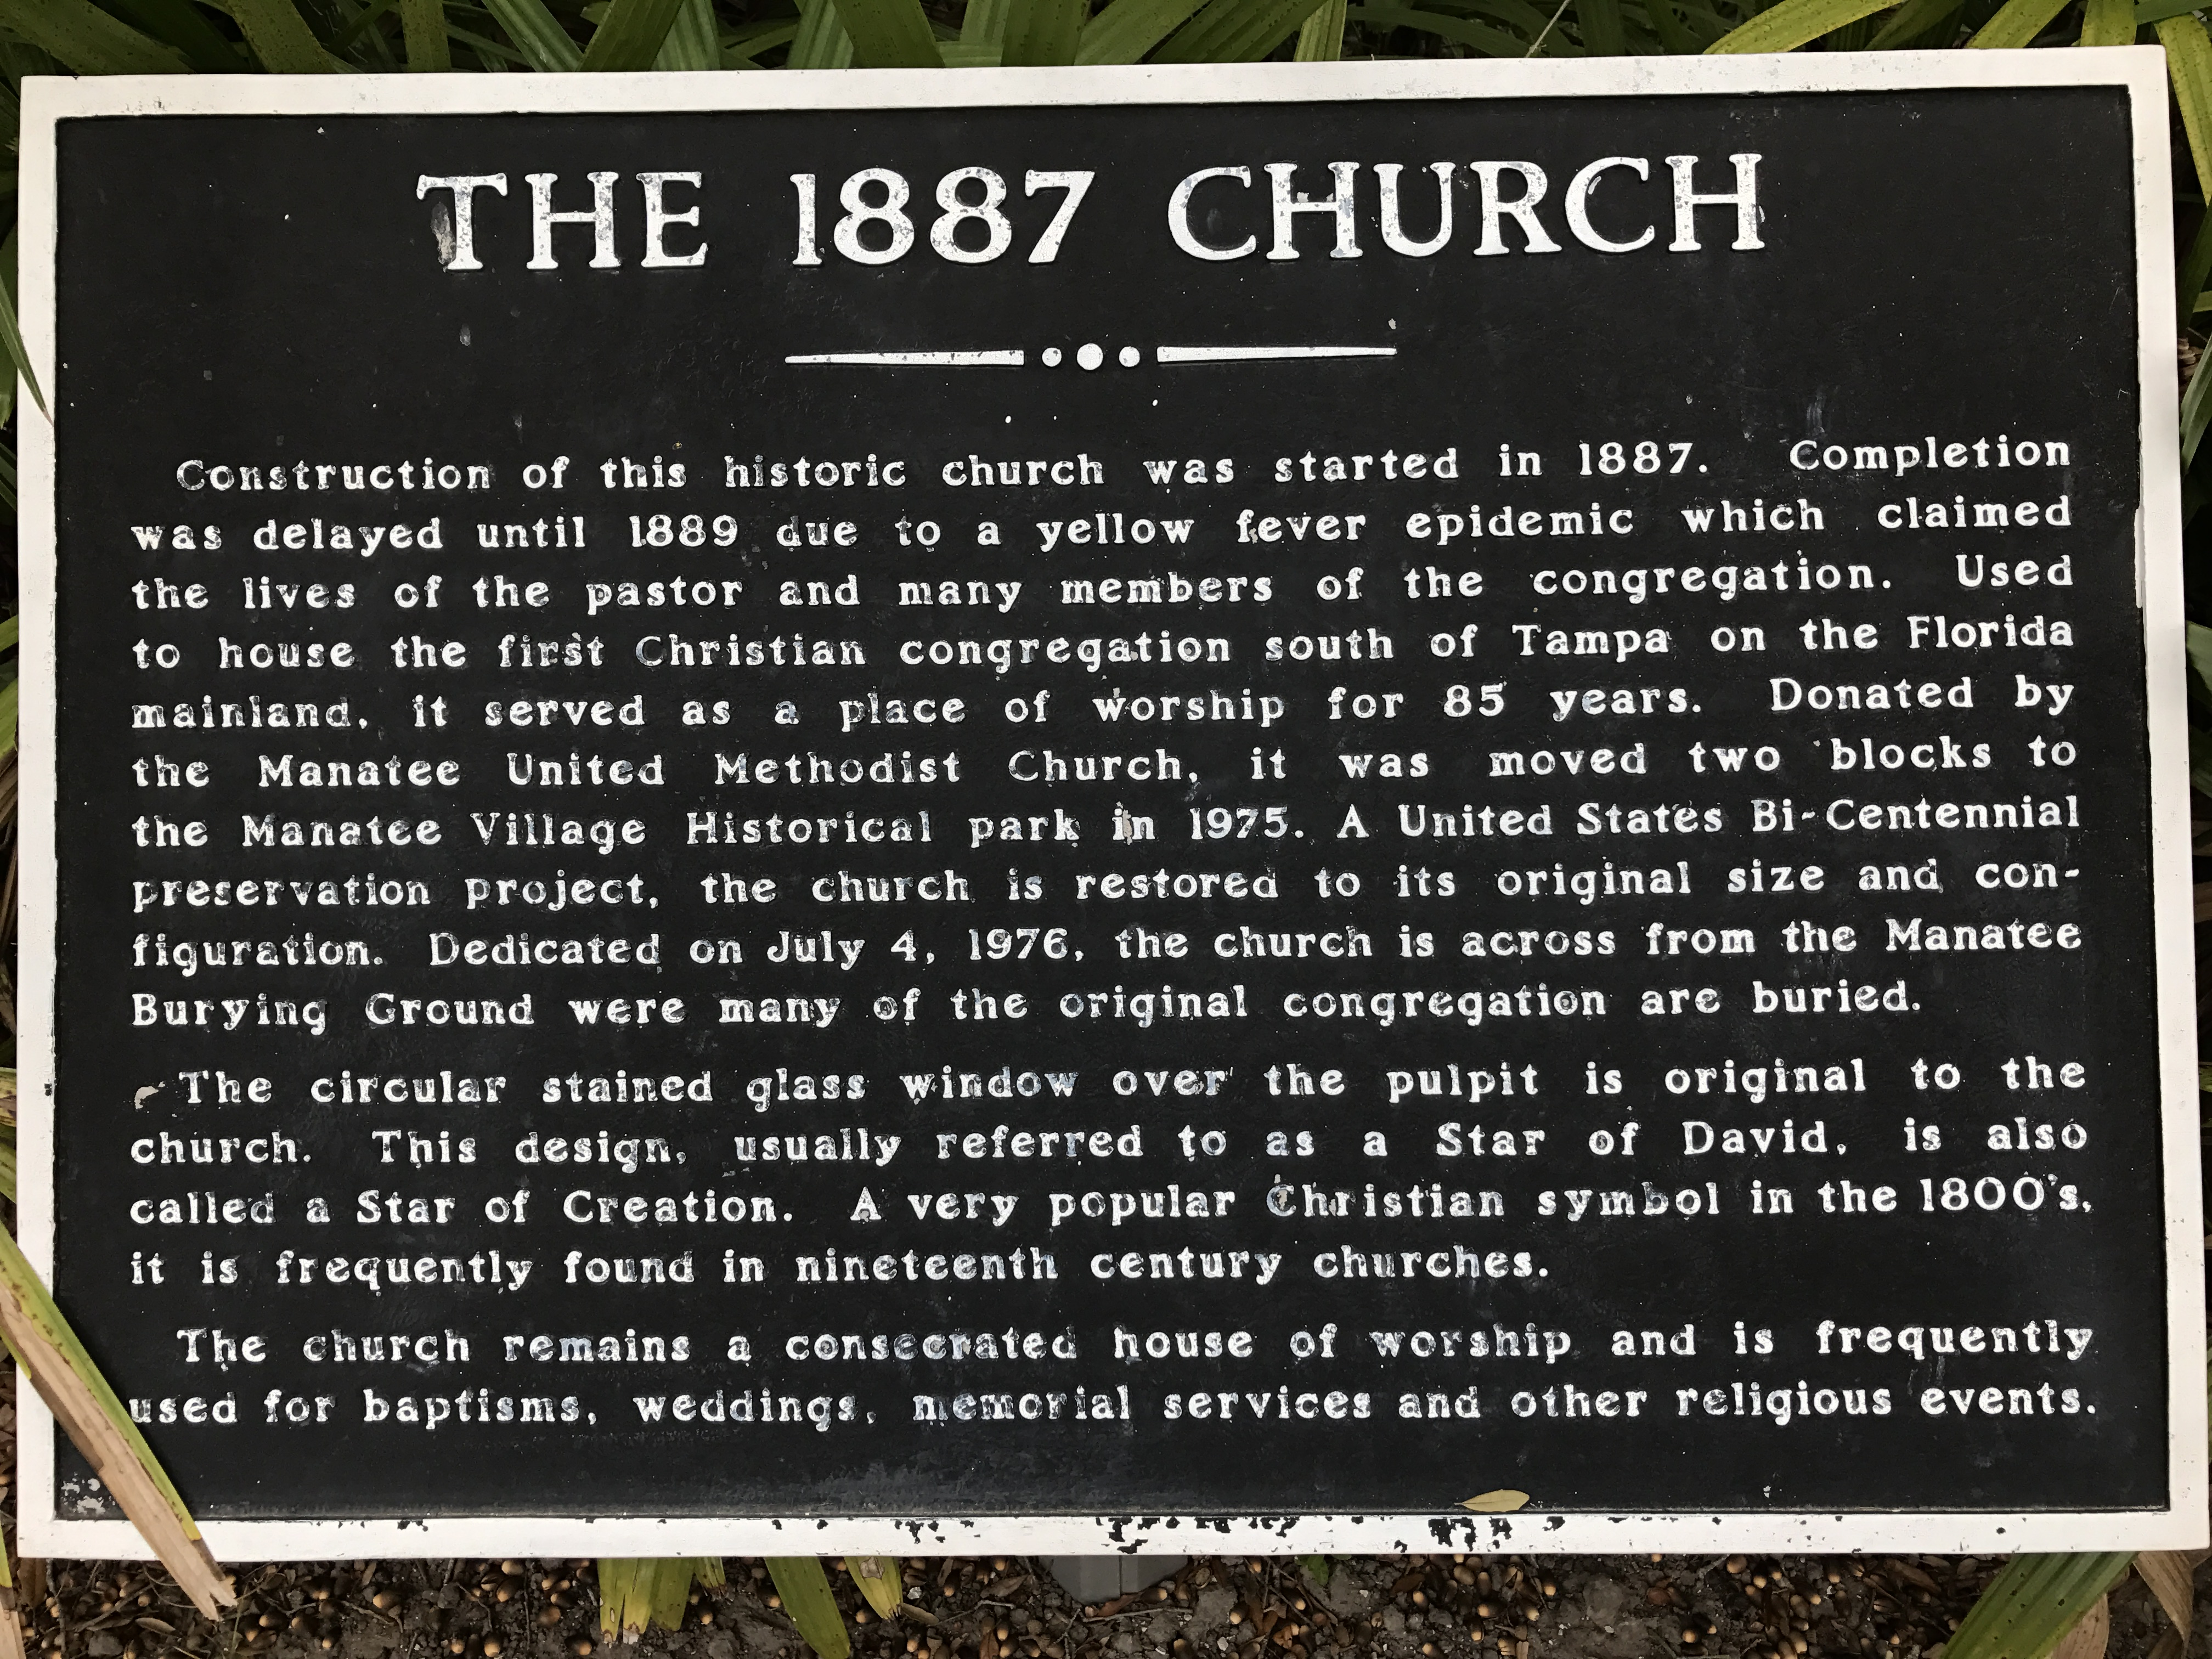 1887 Church Historical Marker